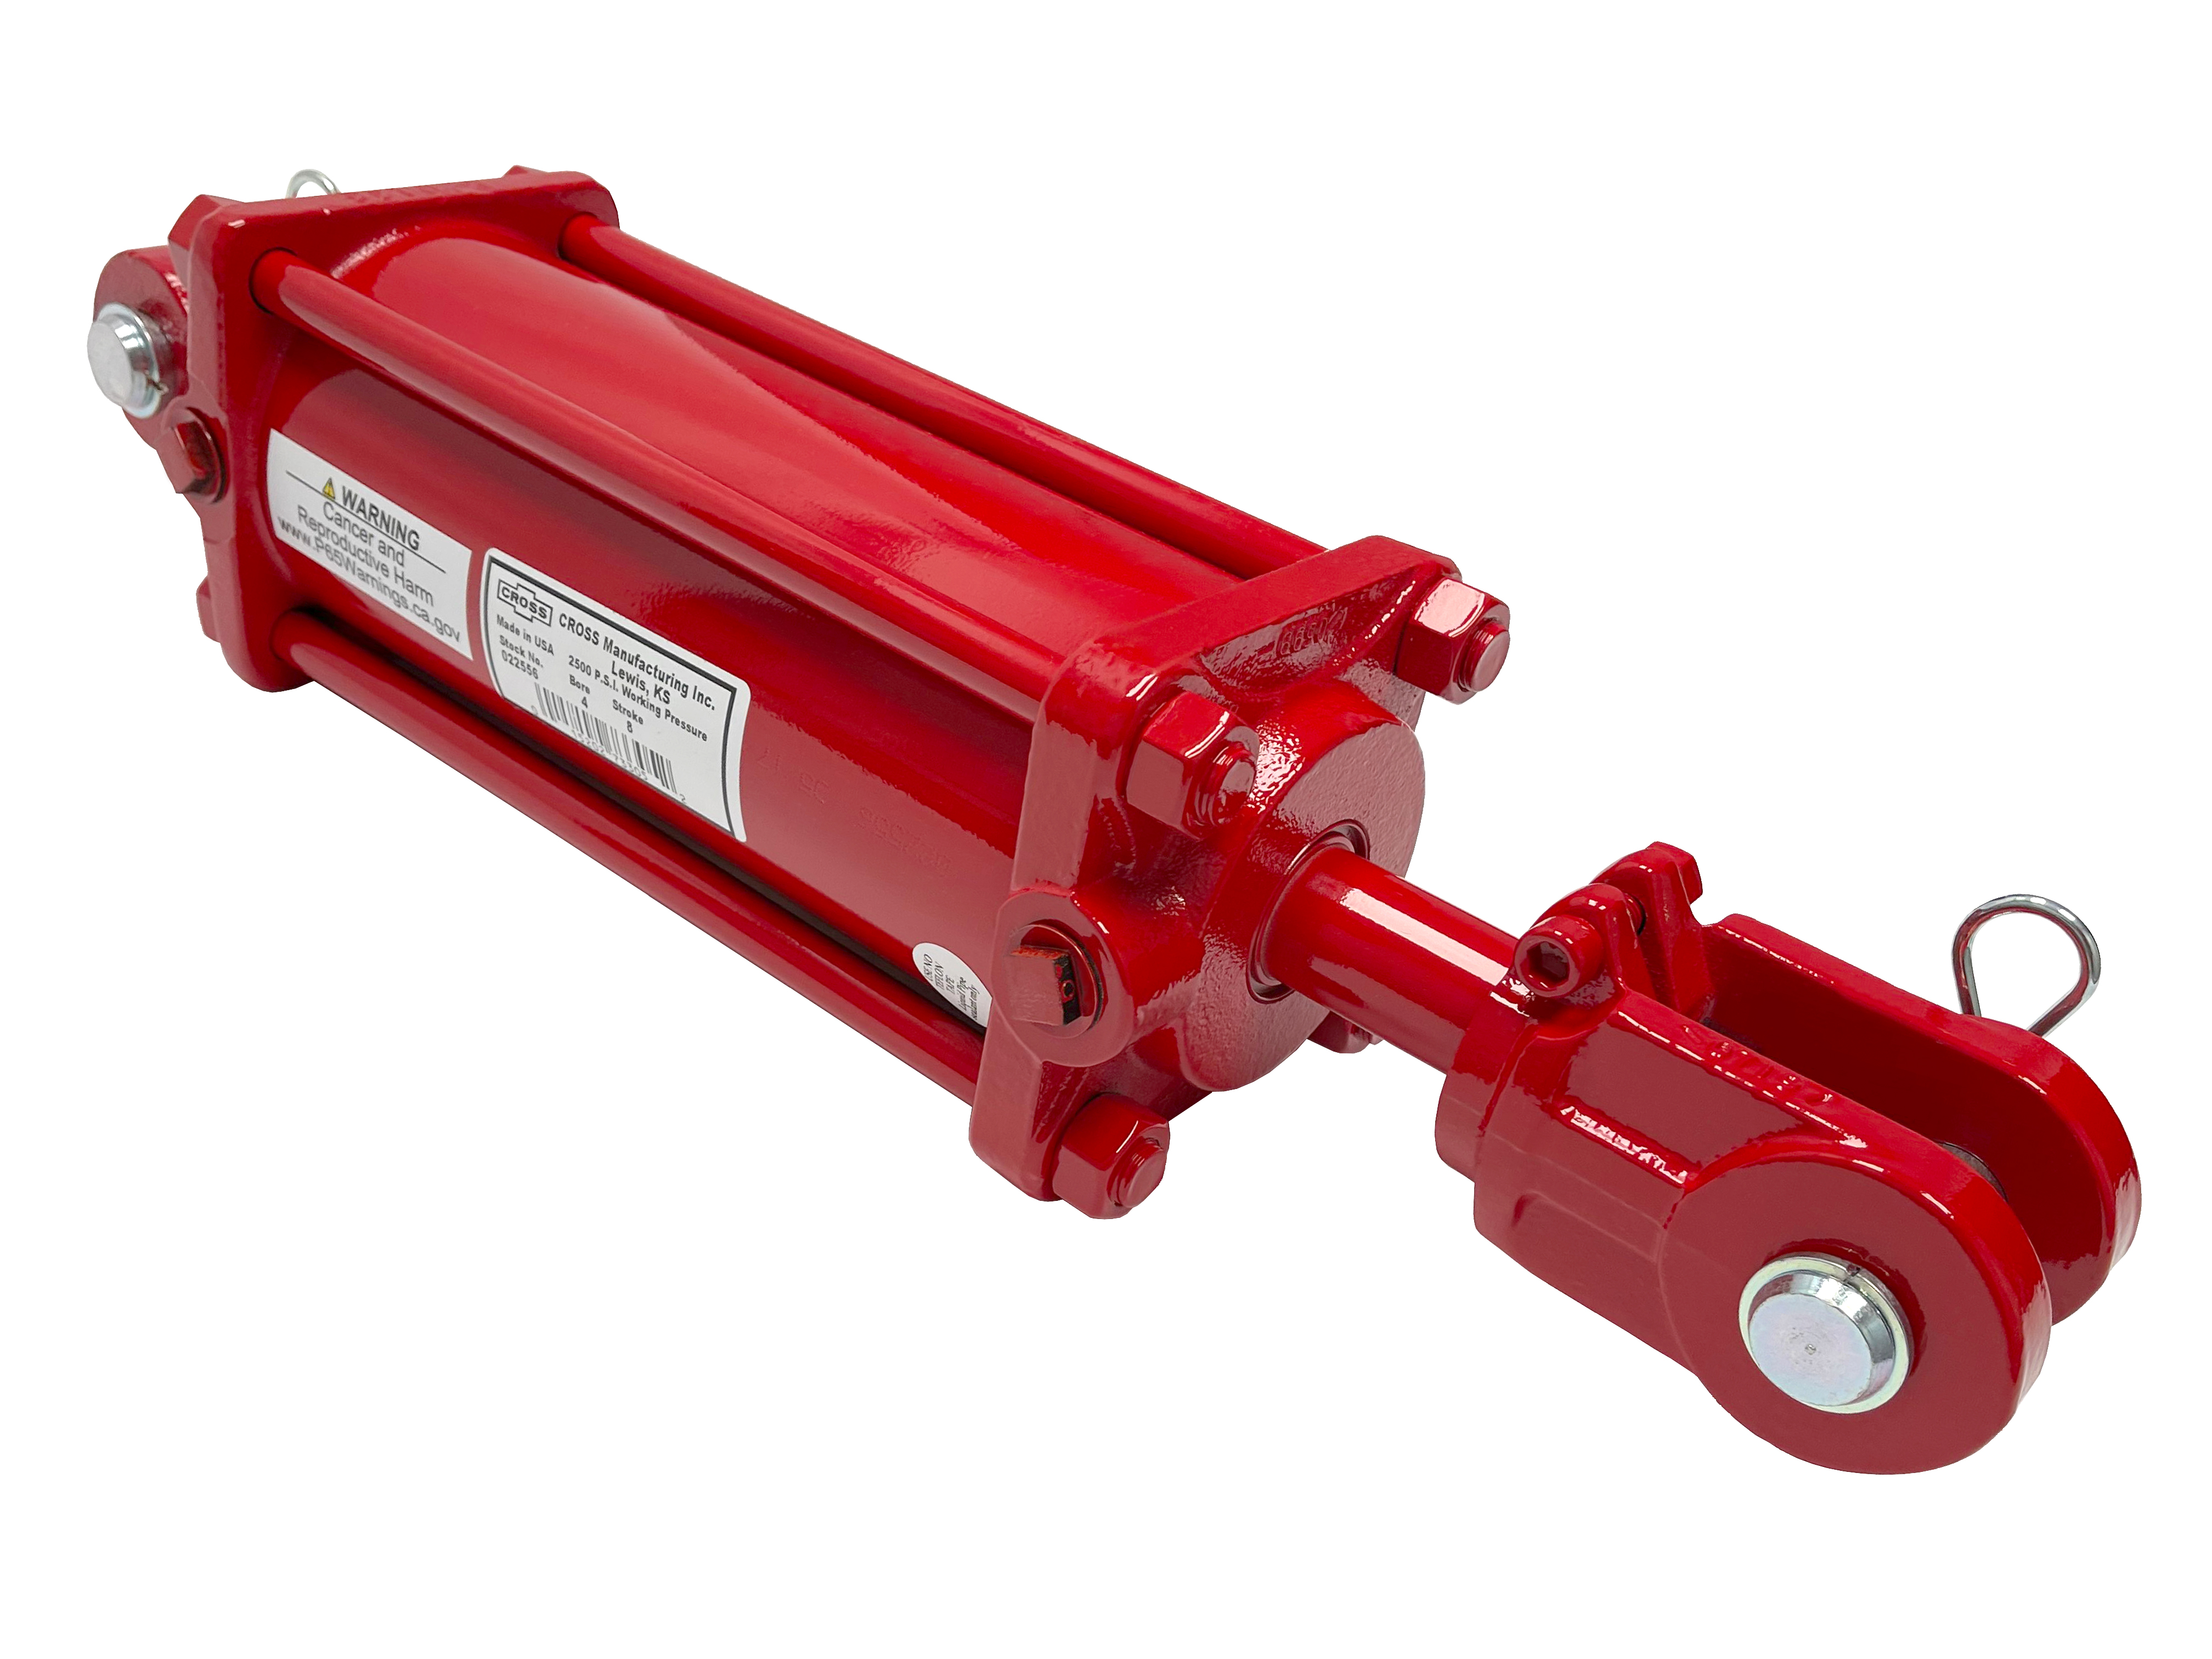 5 bore x 8 ASAE stroke CROSS hydraulic cylinder, tie rod double acting cylinder DB series | CROSS MANUFACTURING